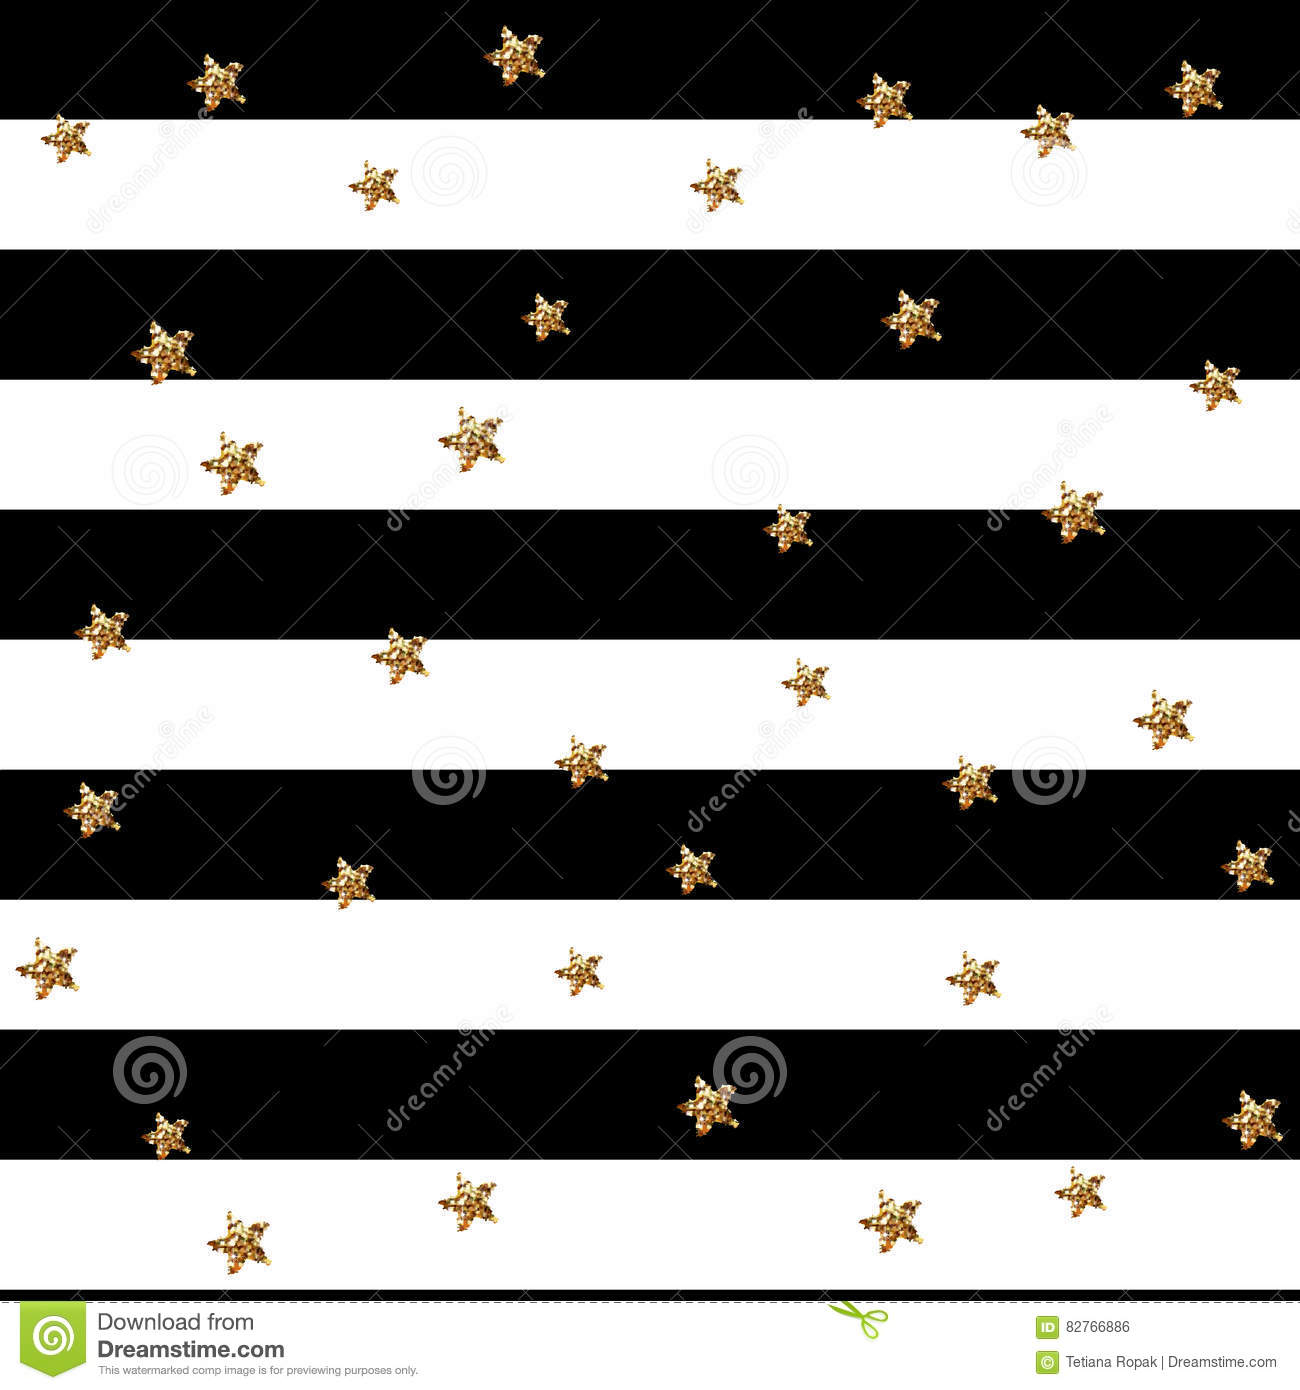 Gold glittering stars confetti seamless pattern on stripe background. Vector illustration. Glitter stars and lights, sparkles. End